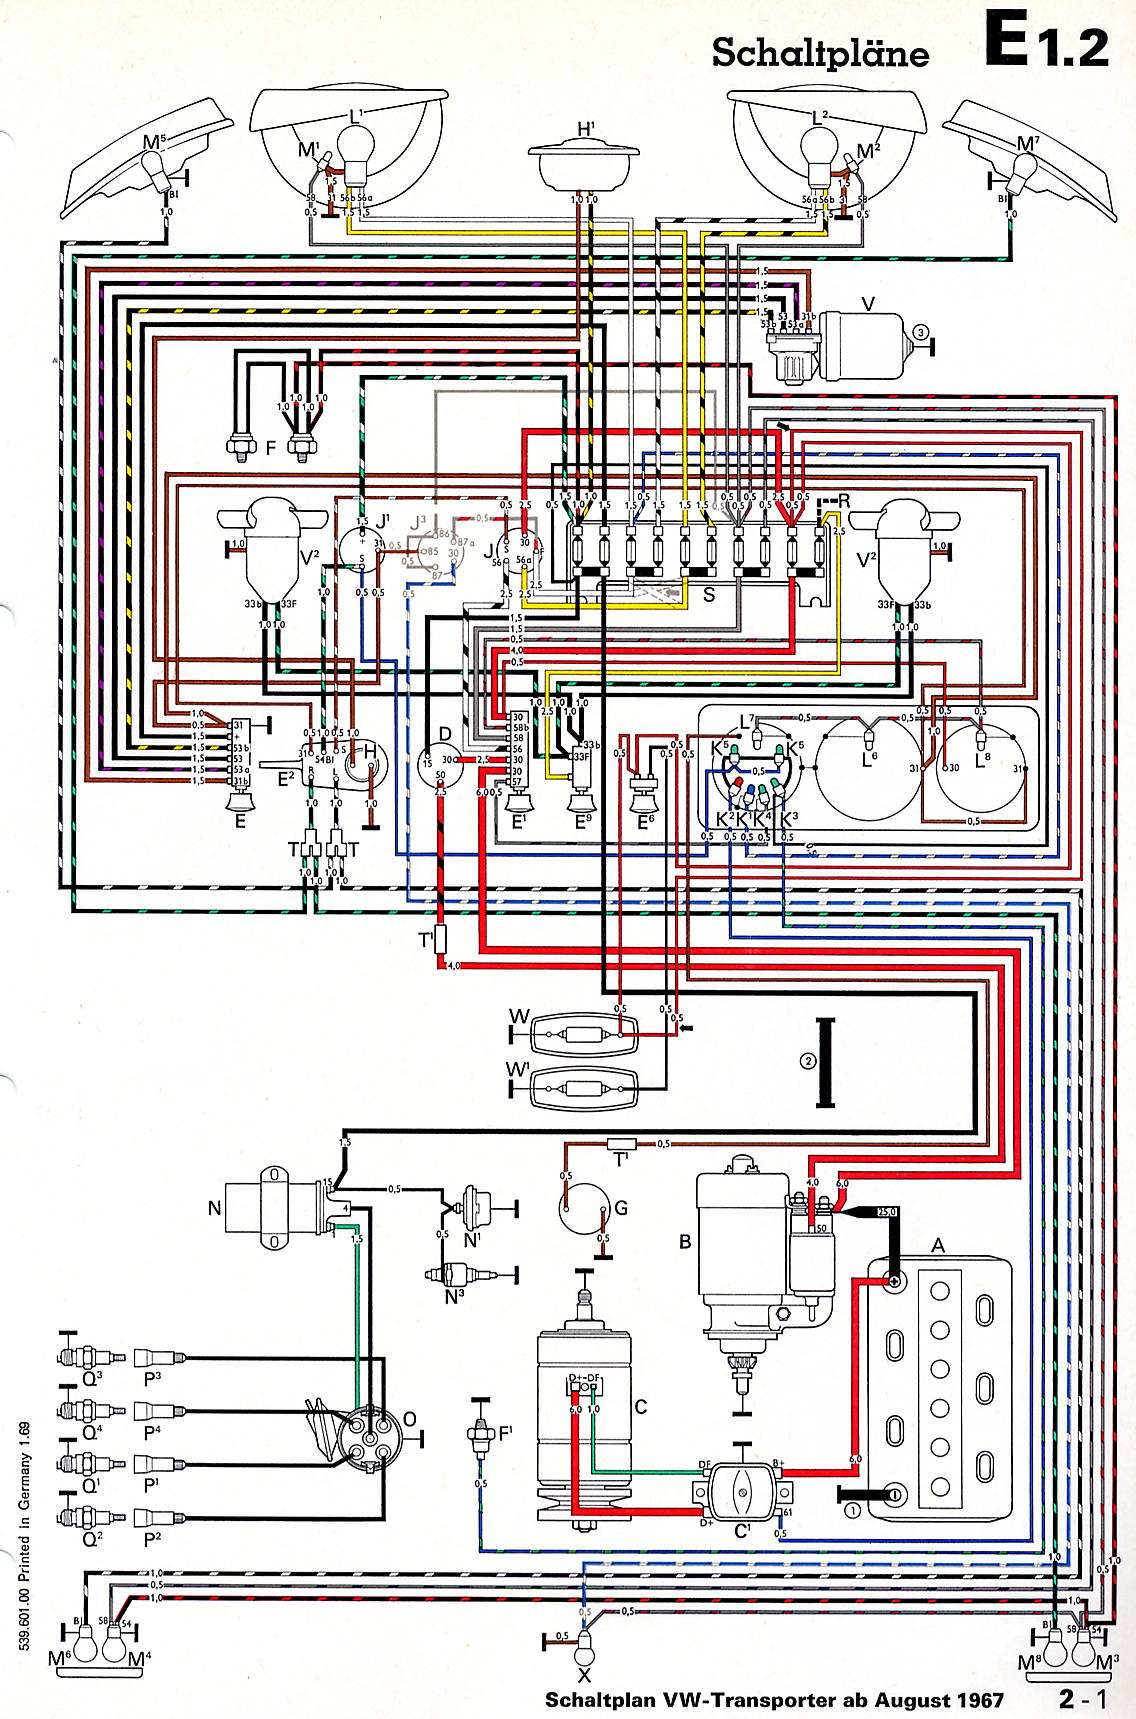 Transporter_from_August_1967 vw wiring diagrams 2008 vw jetta headlight wiring diagram at highcare.asia